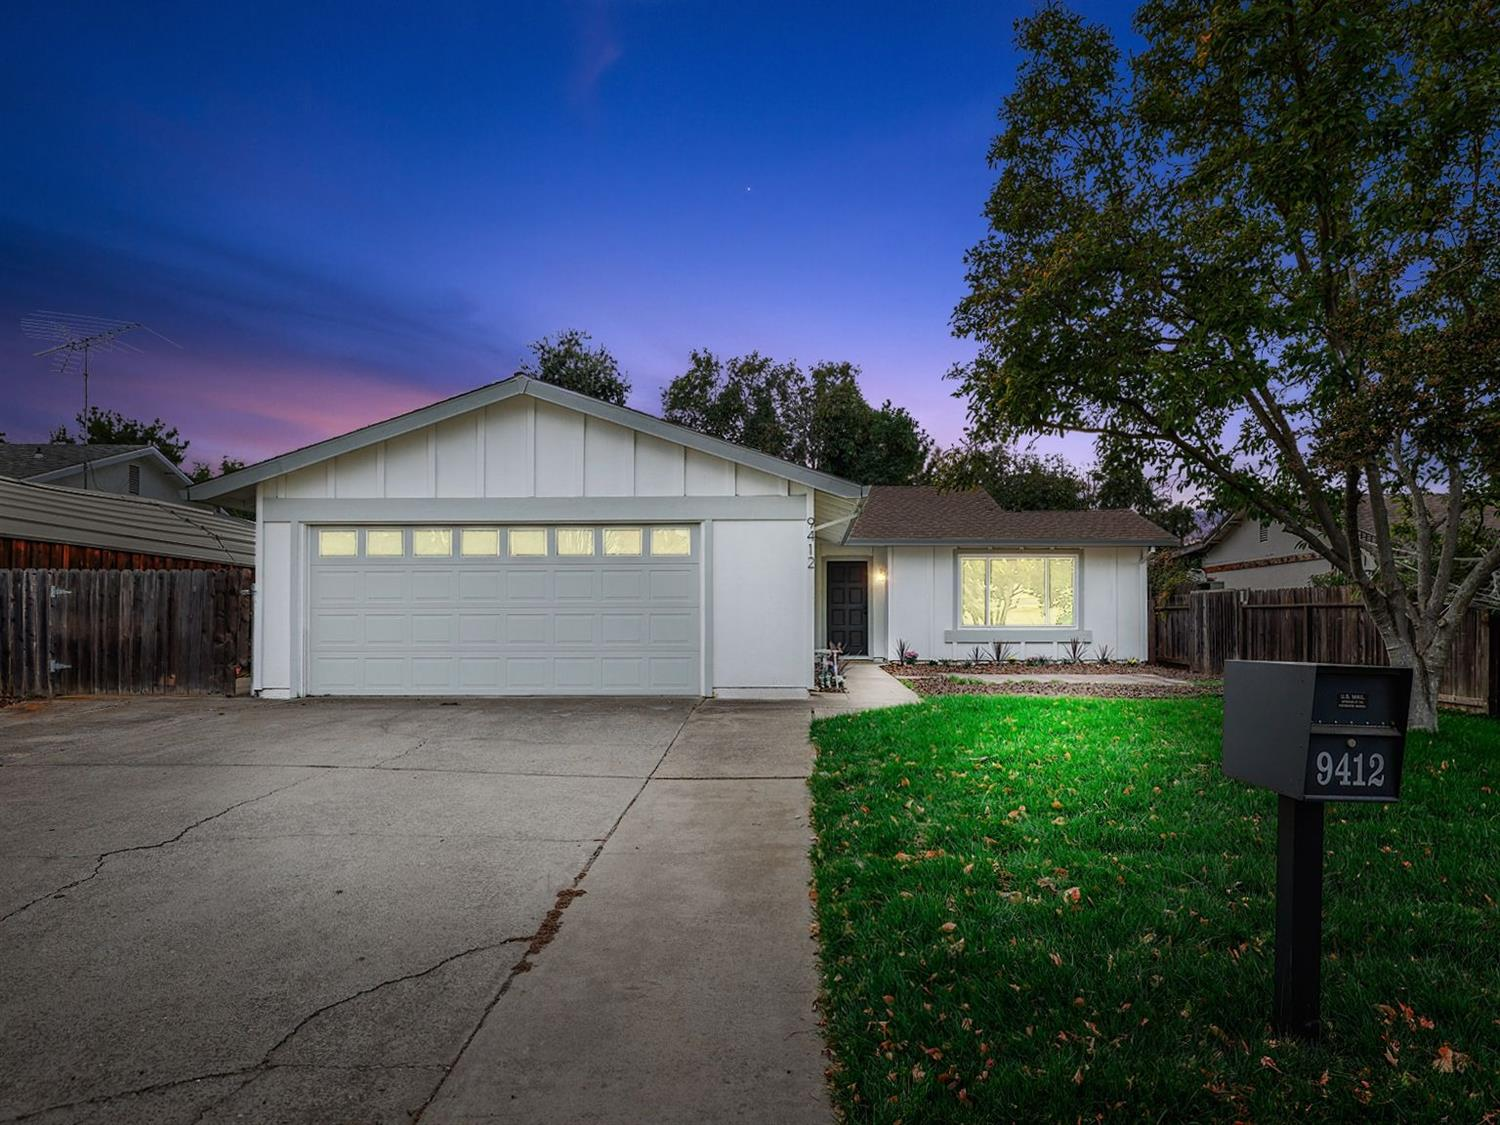 Location---Location--- Come check out this recently remodeled home with a spacious floorplan. This h